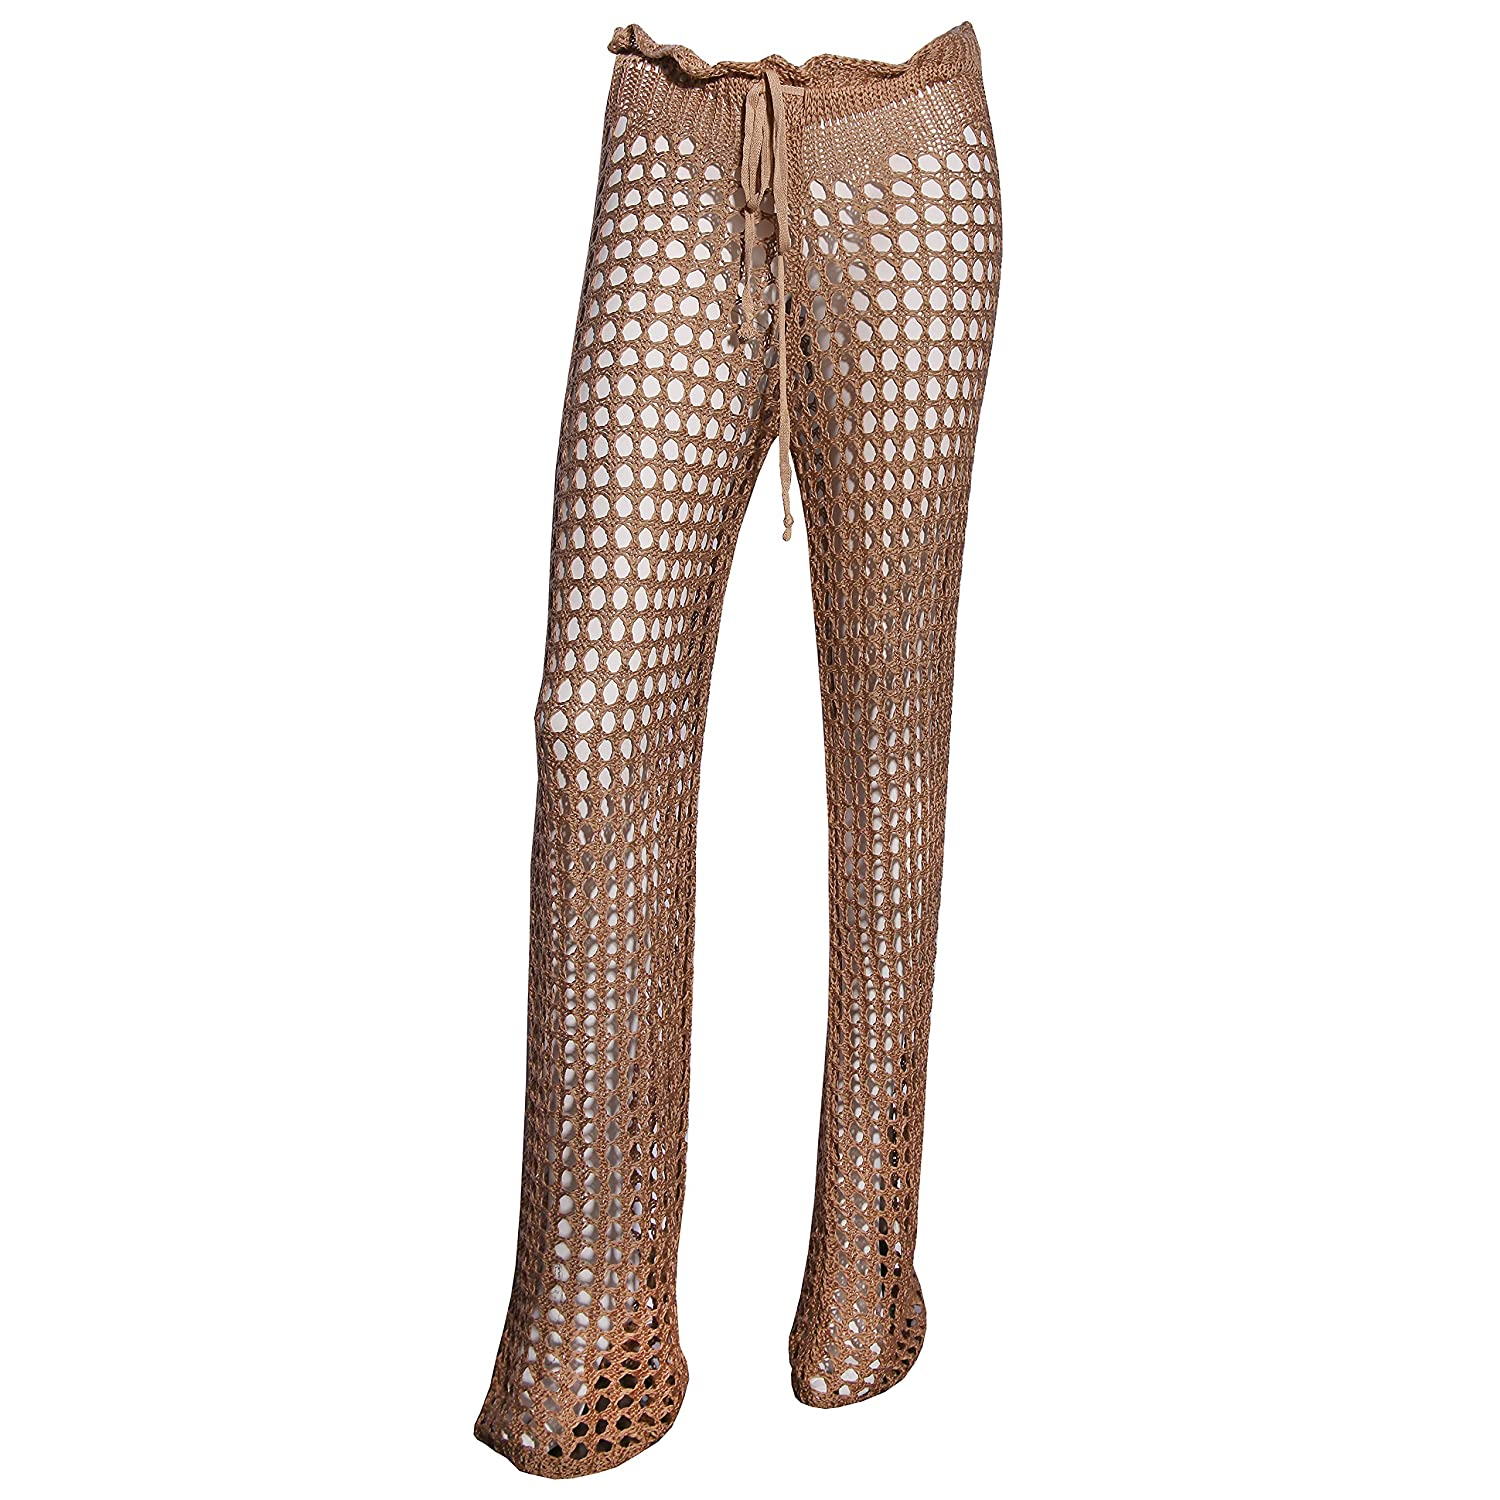 3c664363a6ee9 Undie Couture Crochet Sheer Mesh Beach Cover Up Pants - Tall at Amazon Women's  Clothing store: